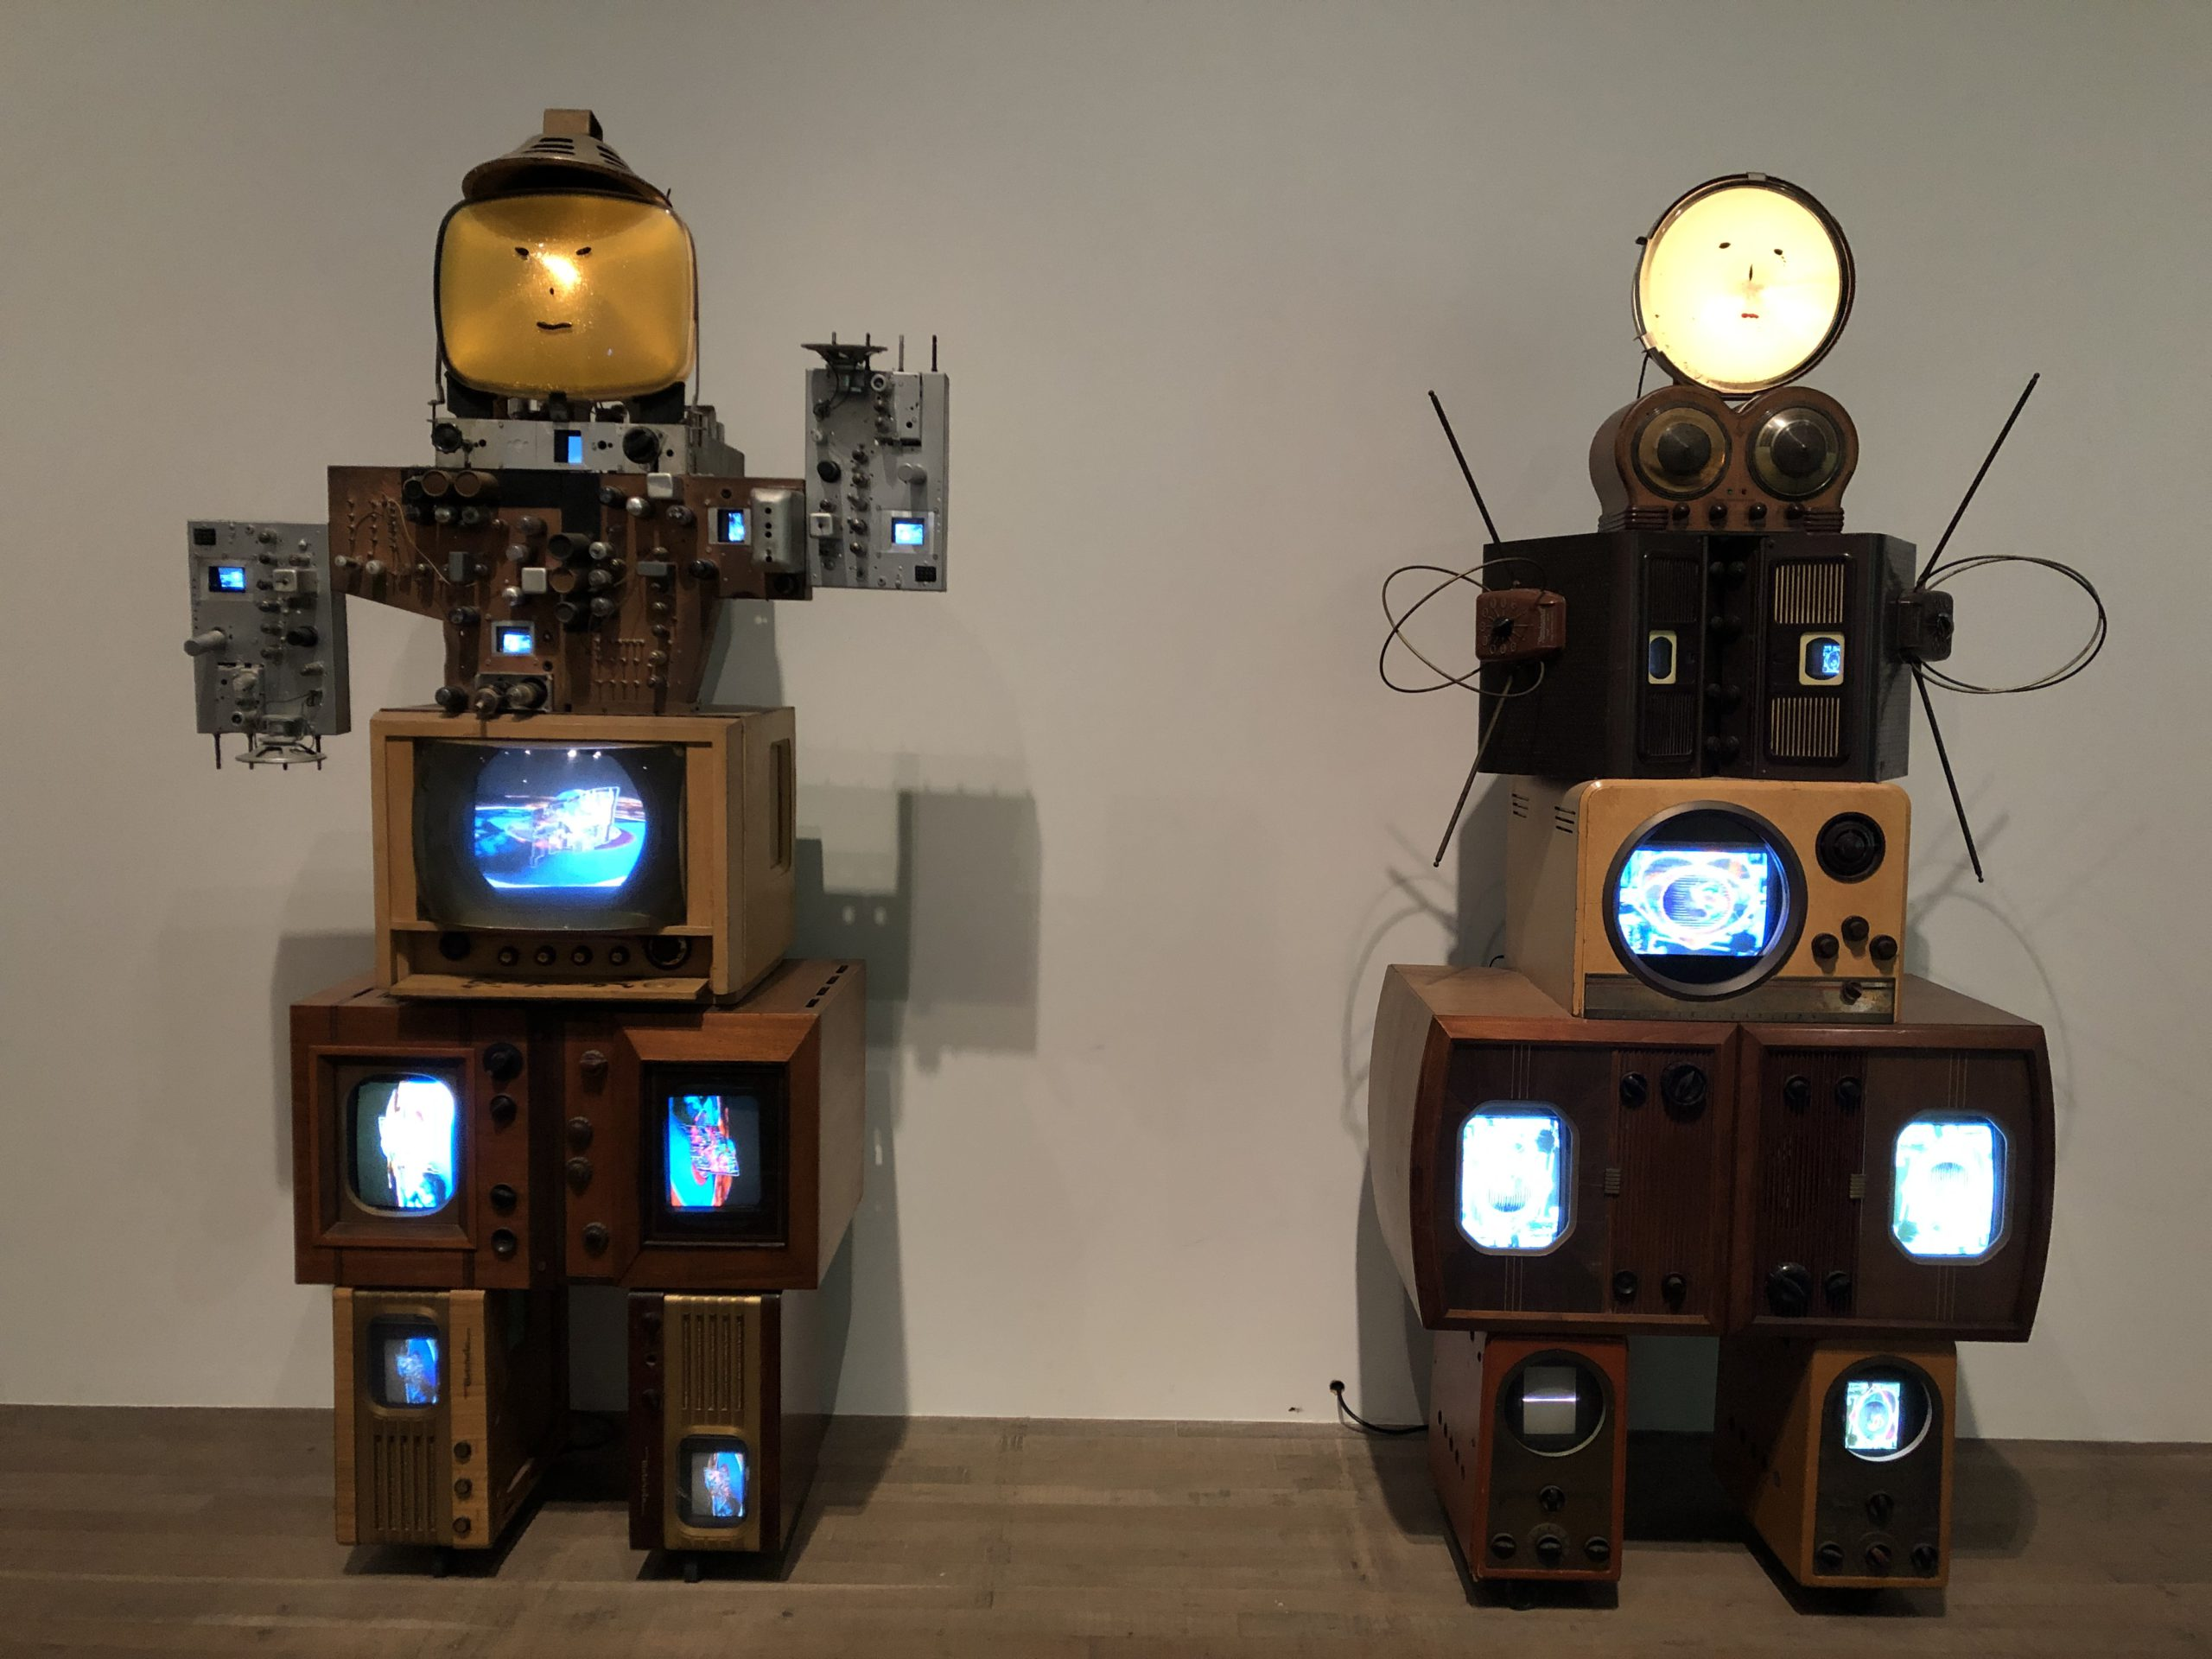 Image of artwork titled Aunt and Uncle by artist Nam June Paik